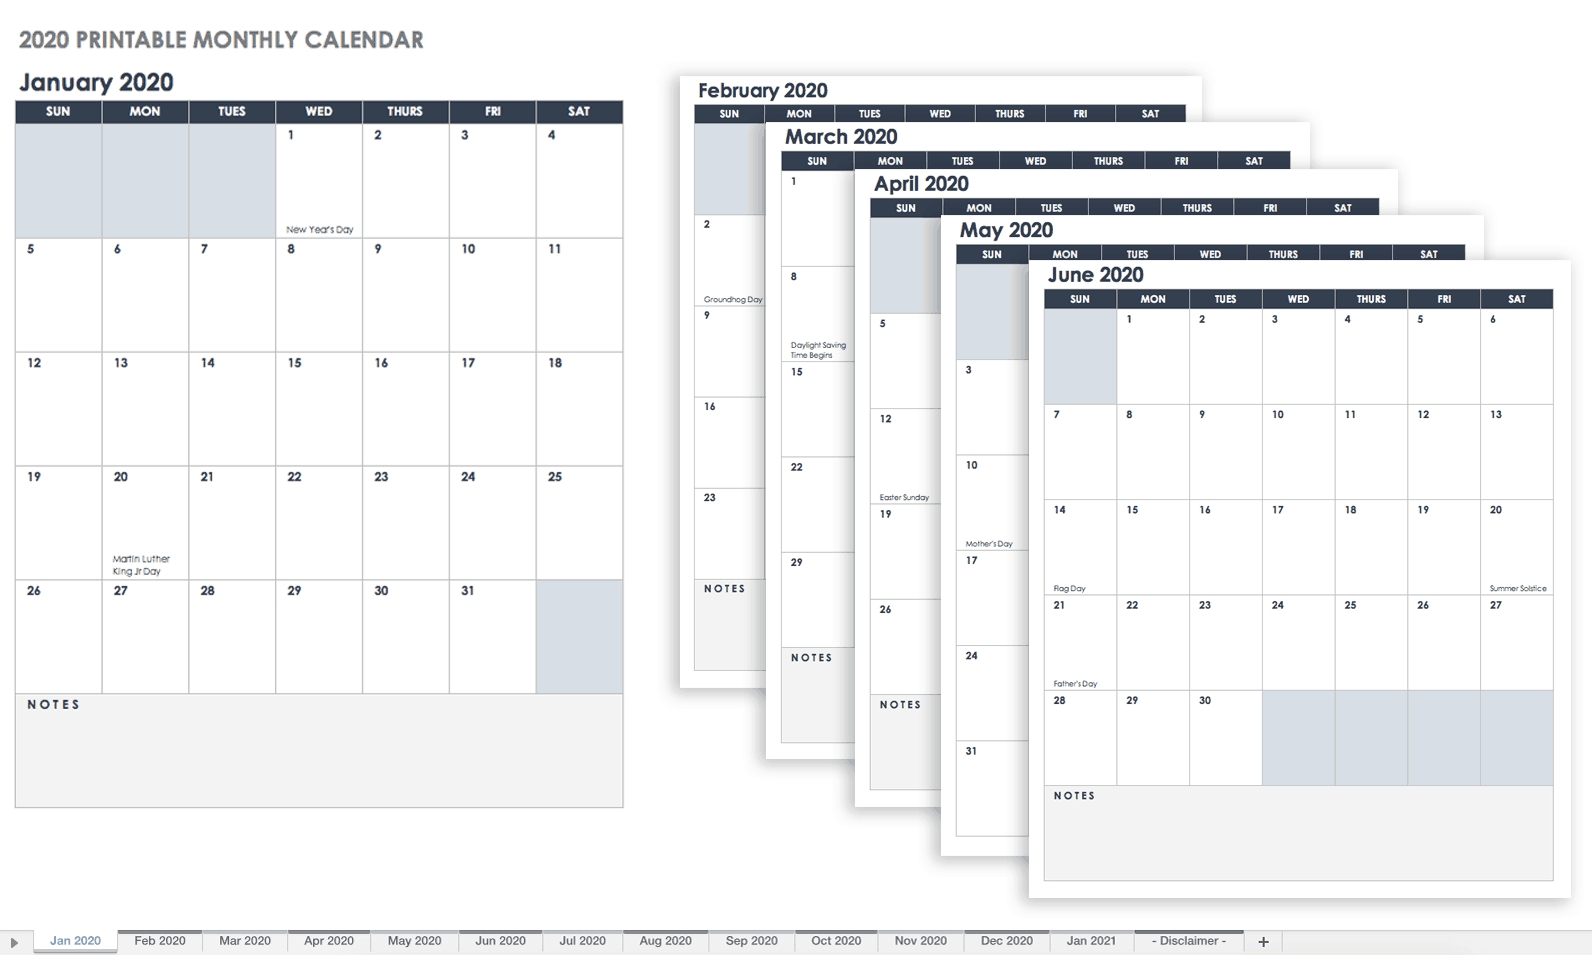 Free Blank Calendar Templates - Smartsheet intended for Microsoft Word Calendar Template 2019-2020